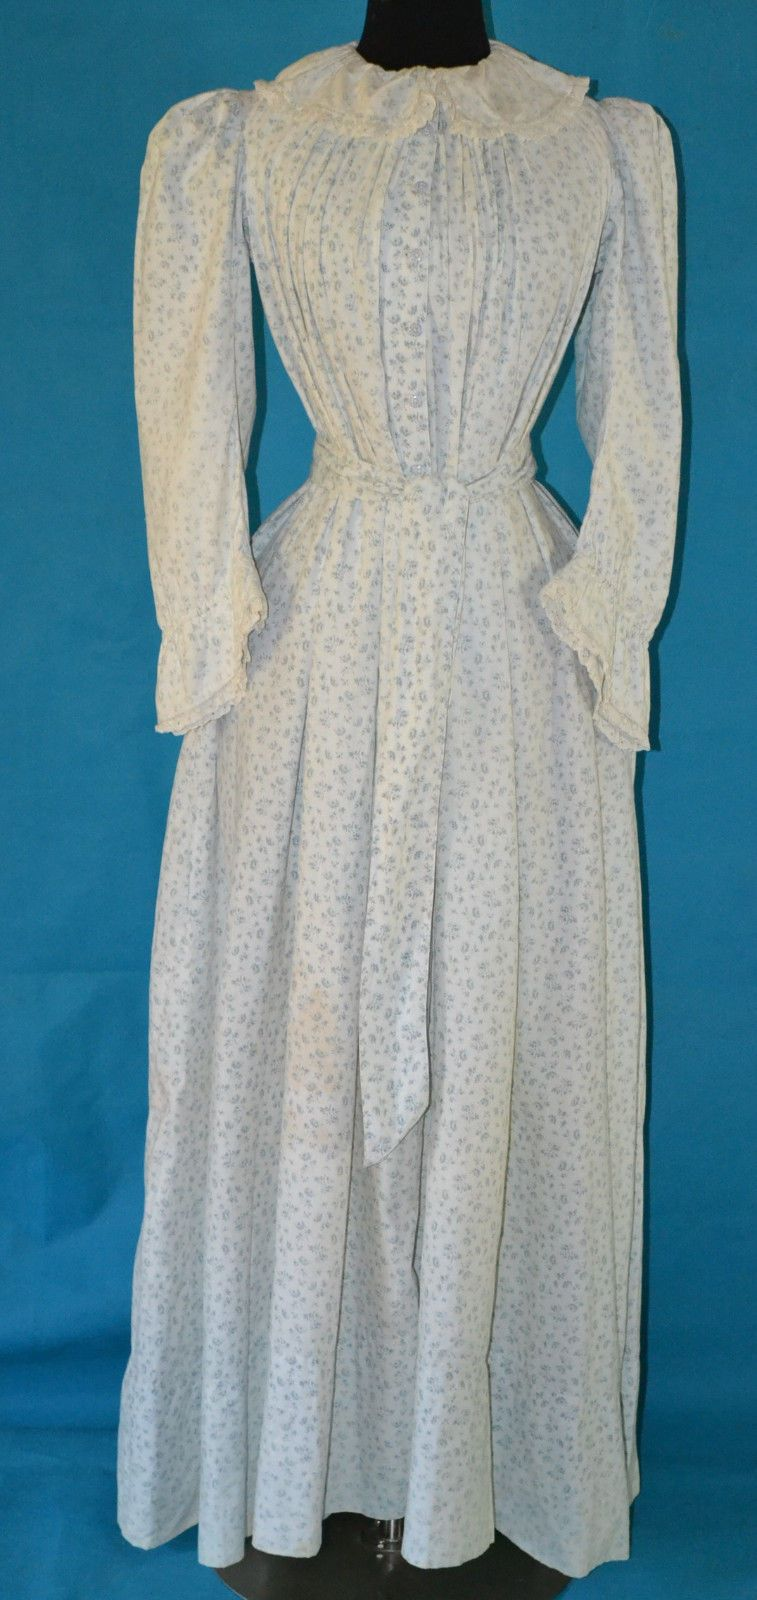 Rare antique 1800s victorian maternity dress blue calico print 7 rare antique 1800s victorian maternity dress blue calico print 7 china buttons ebay ombrellifo Image collections